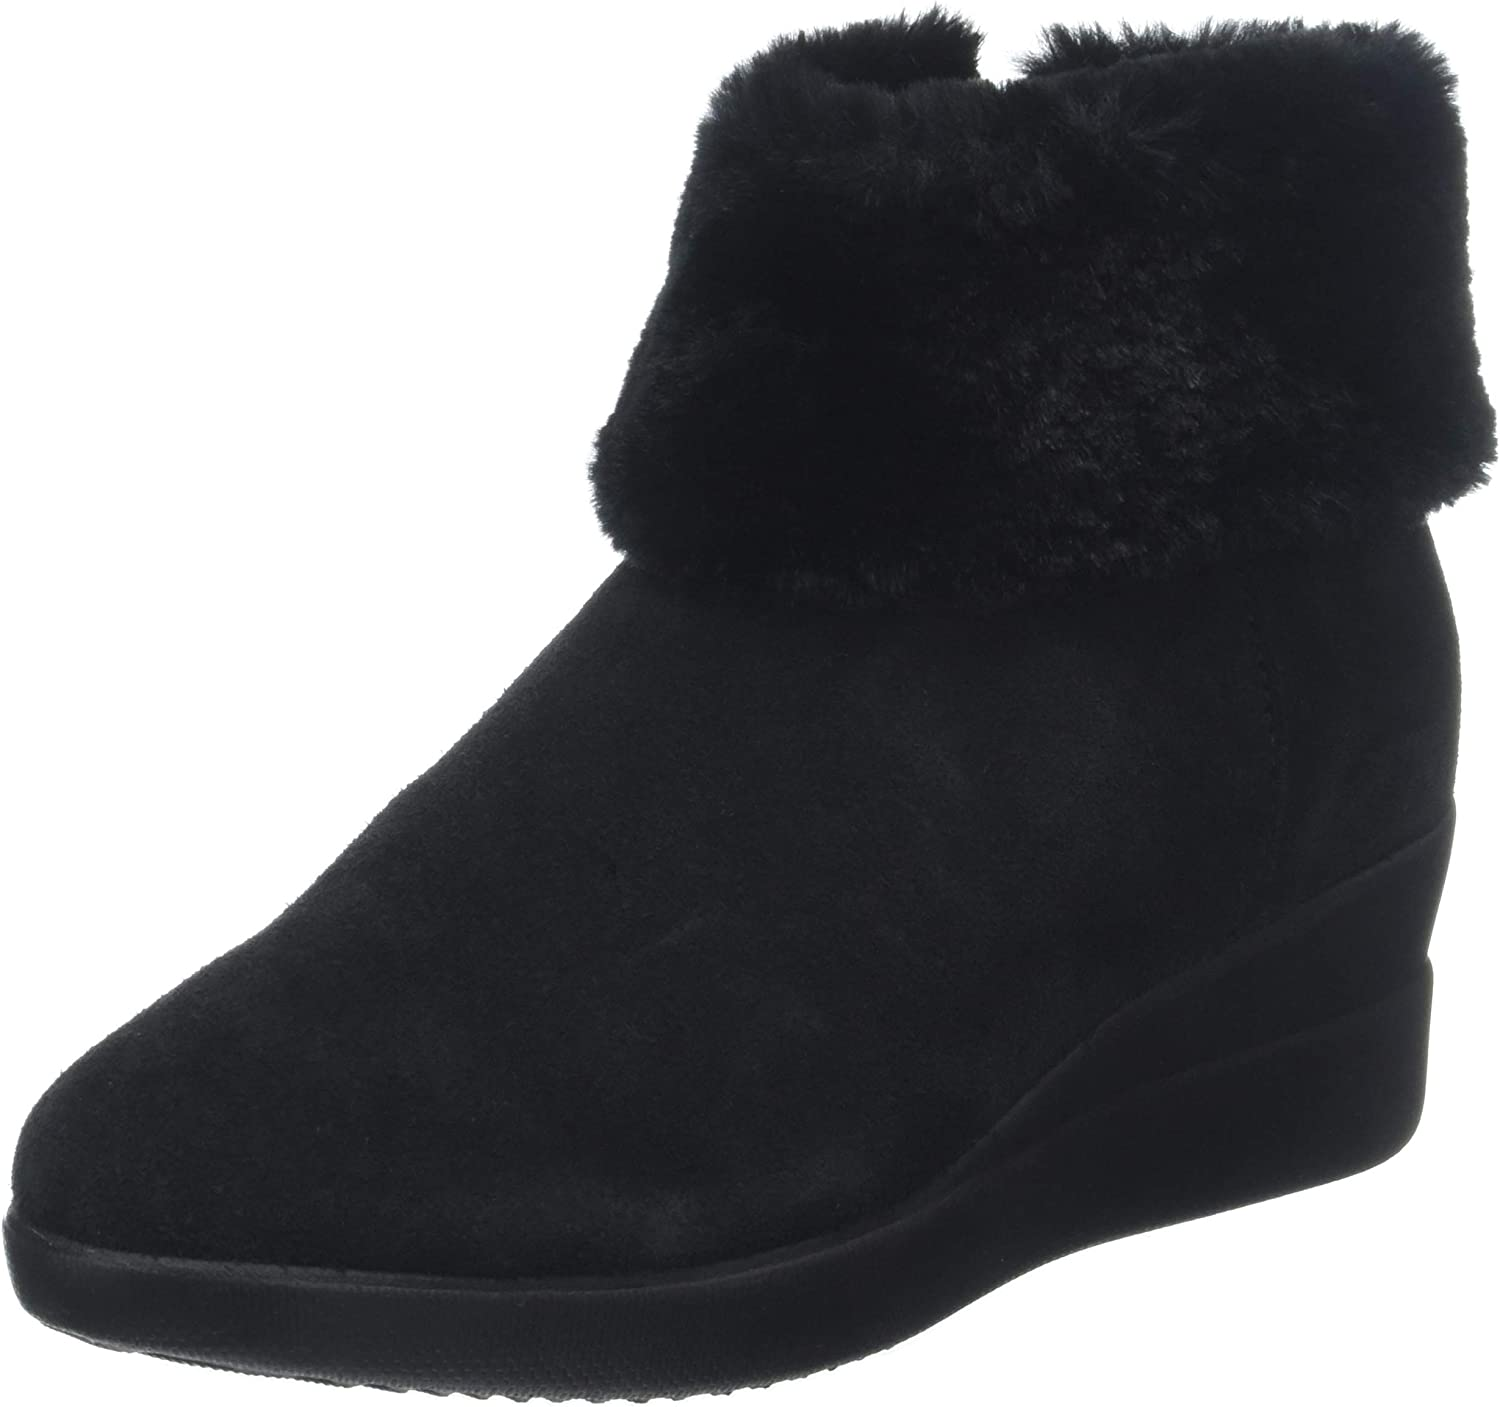 Geox D Stardust C Womens Suede Ankle Boots